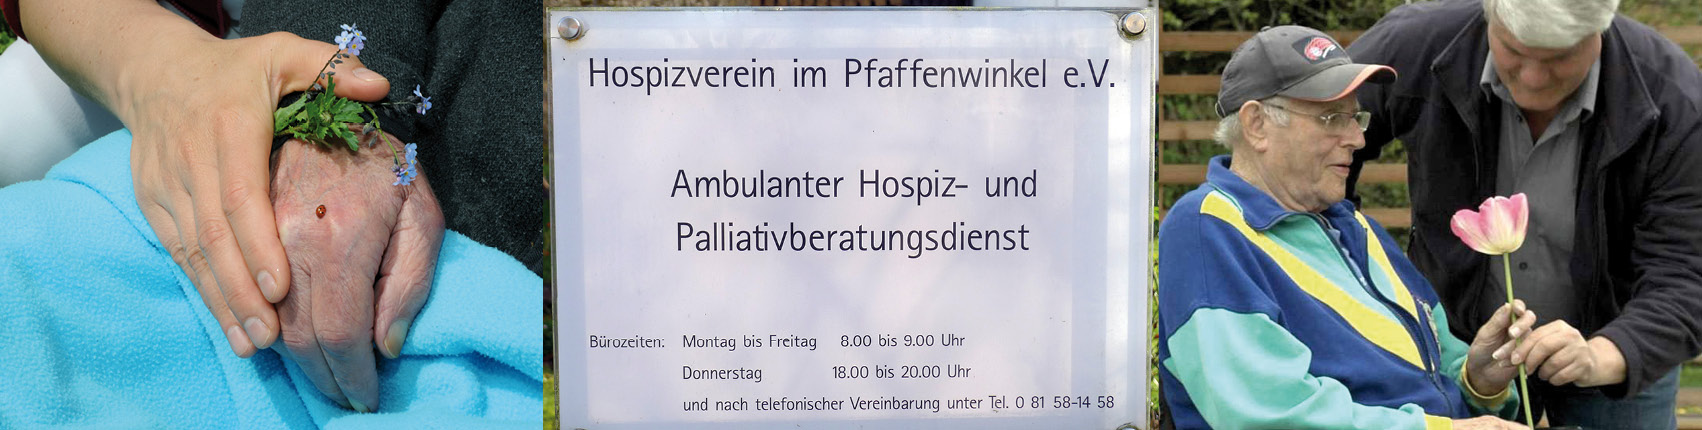 Slider_Ambulanter_Hospizdienst